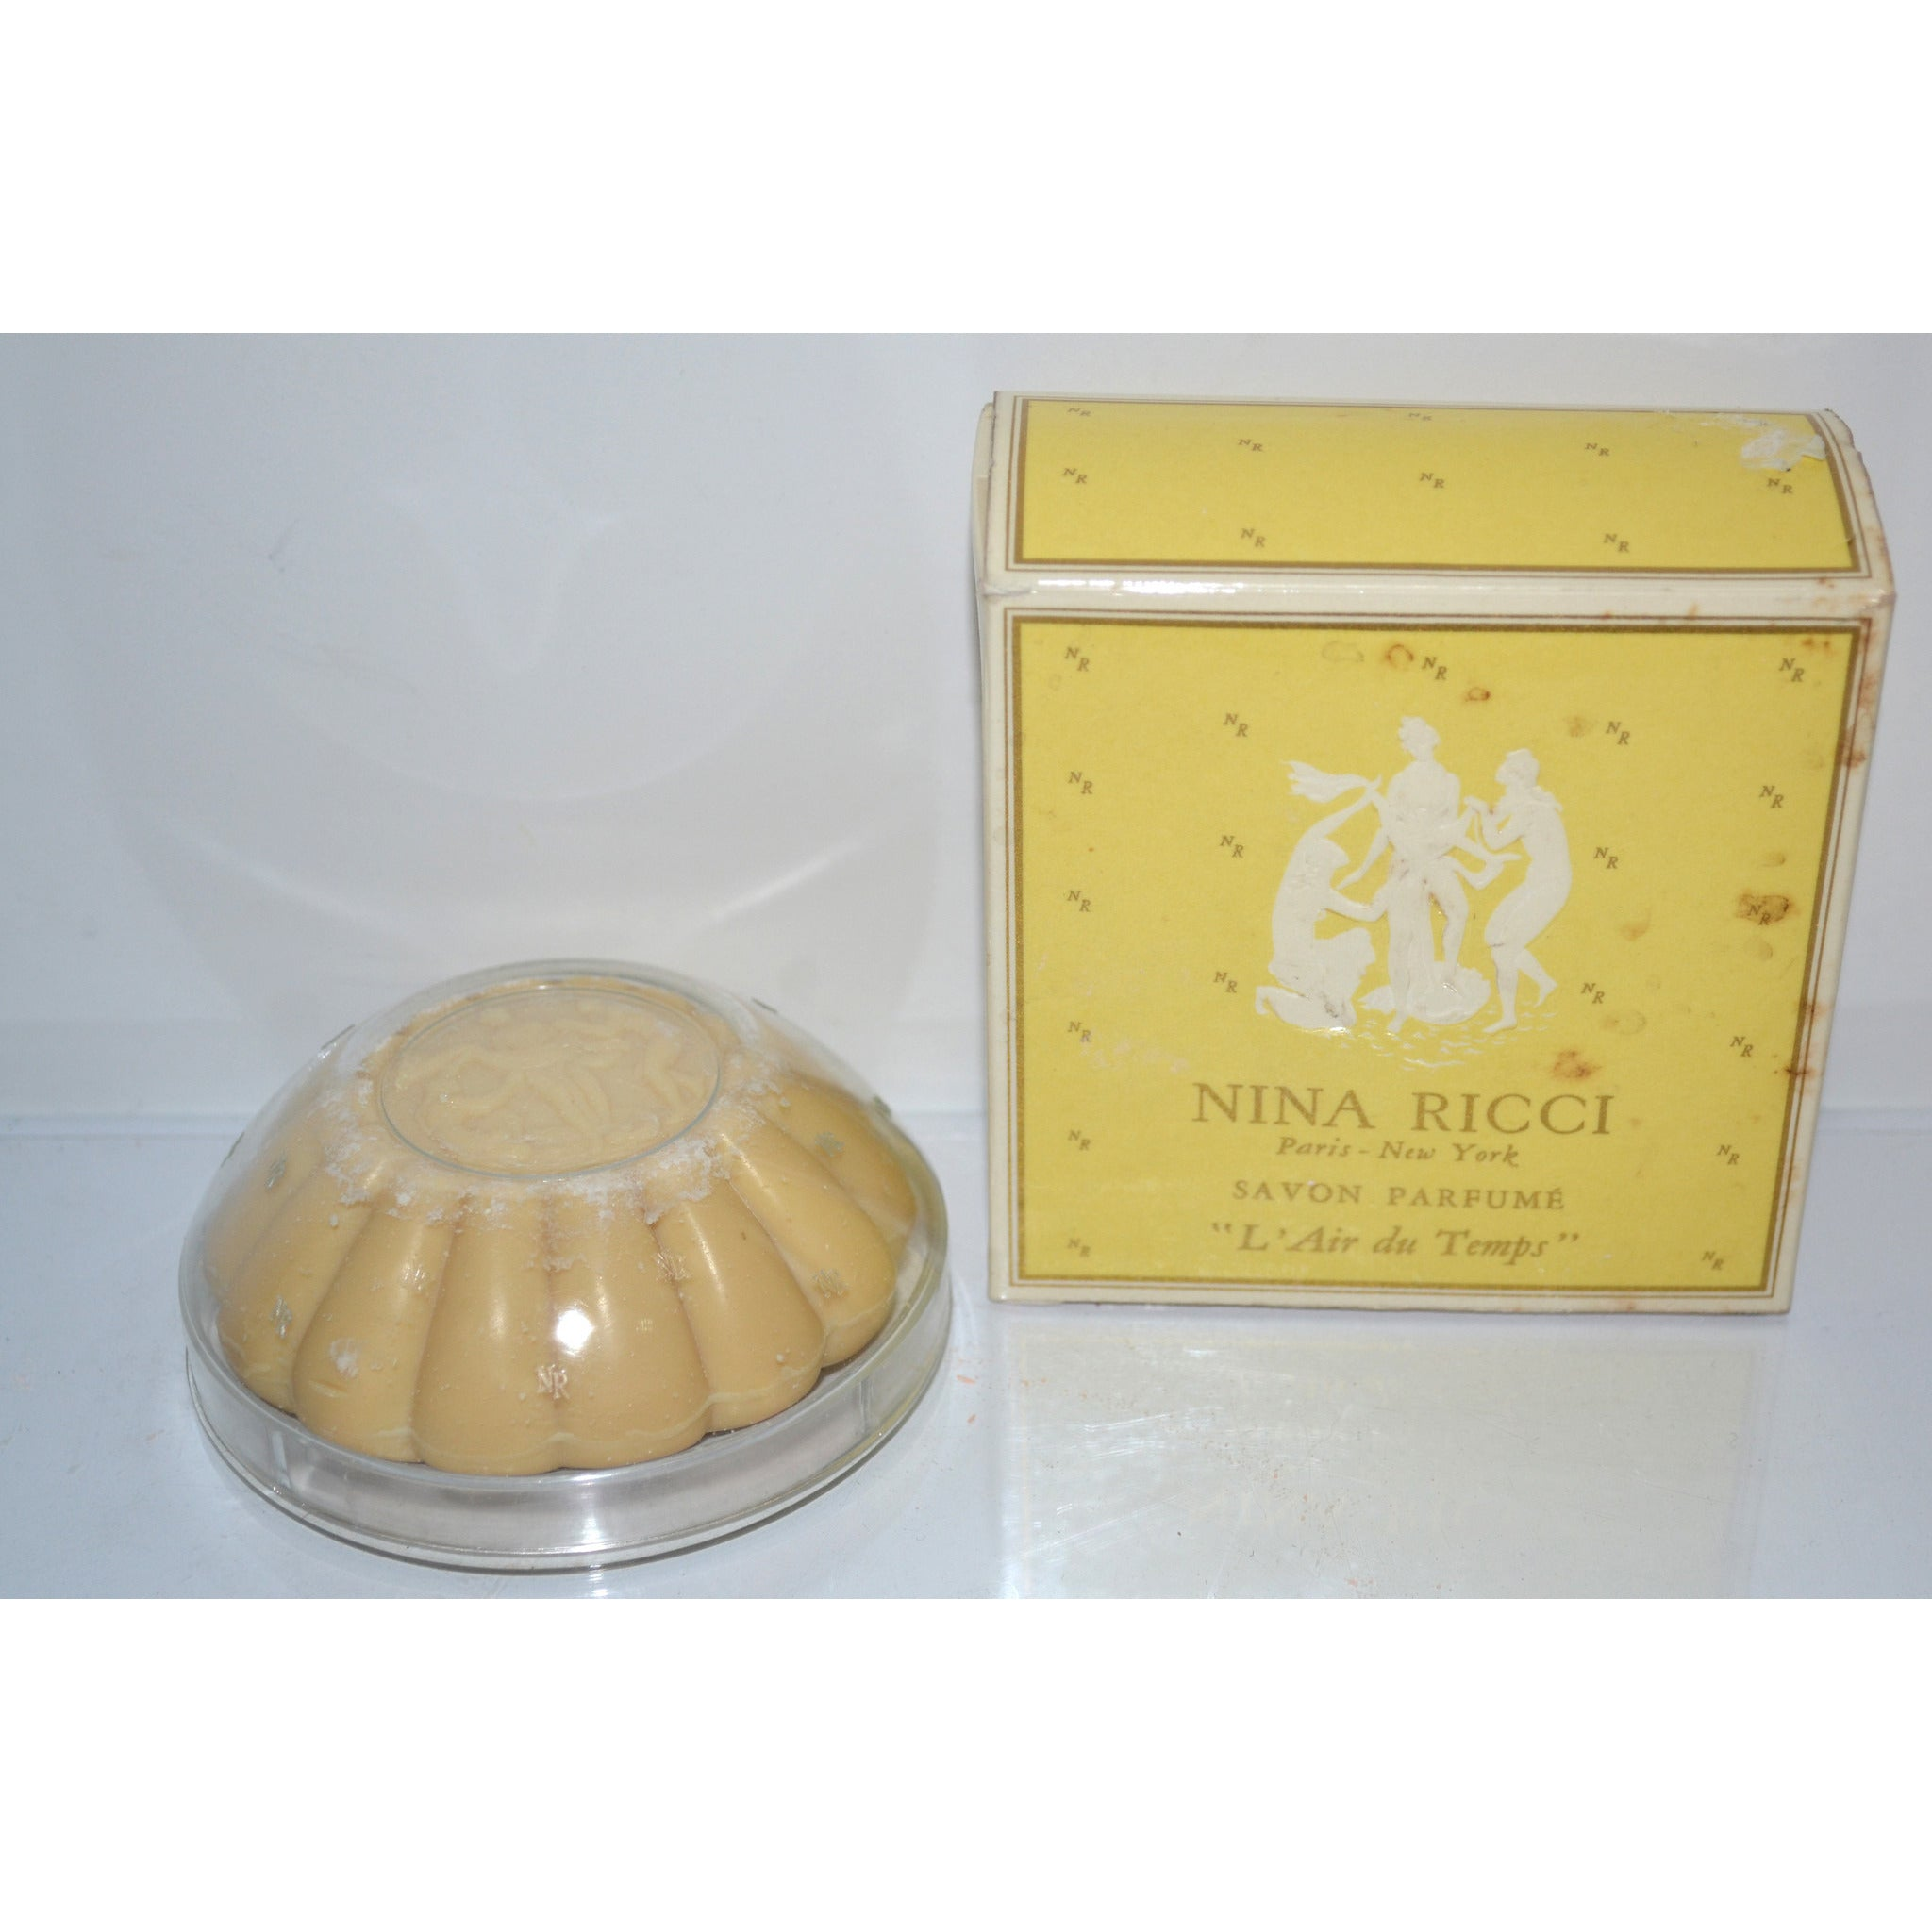 Vintage L'Air du Temps Parfum Soap By Nina Ricci